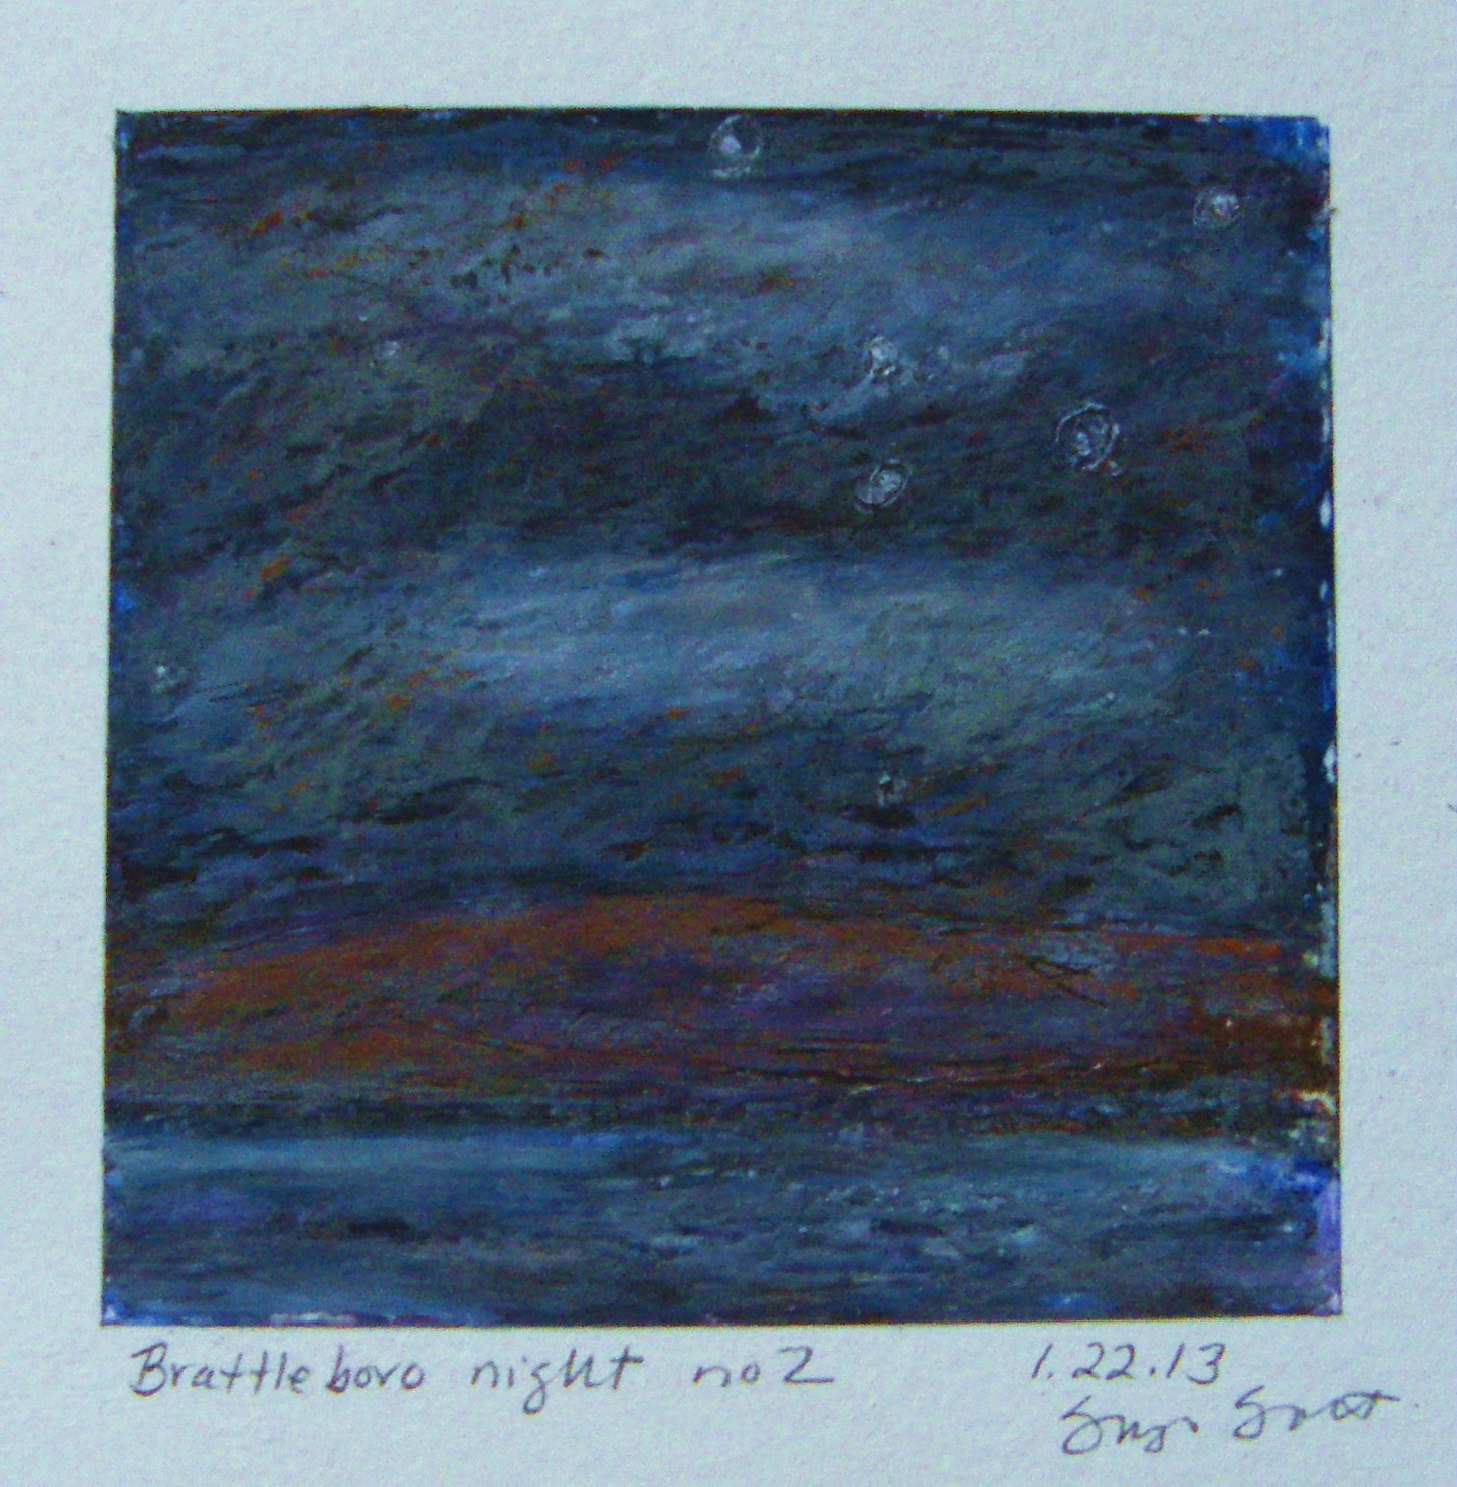 1.22.13  Brattleboro night no 2.JPG